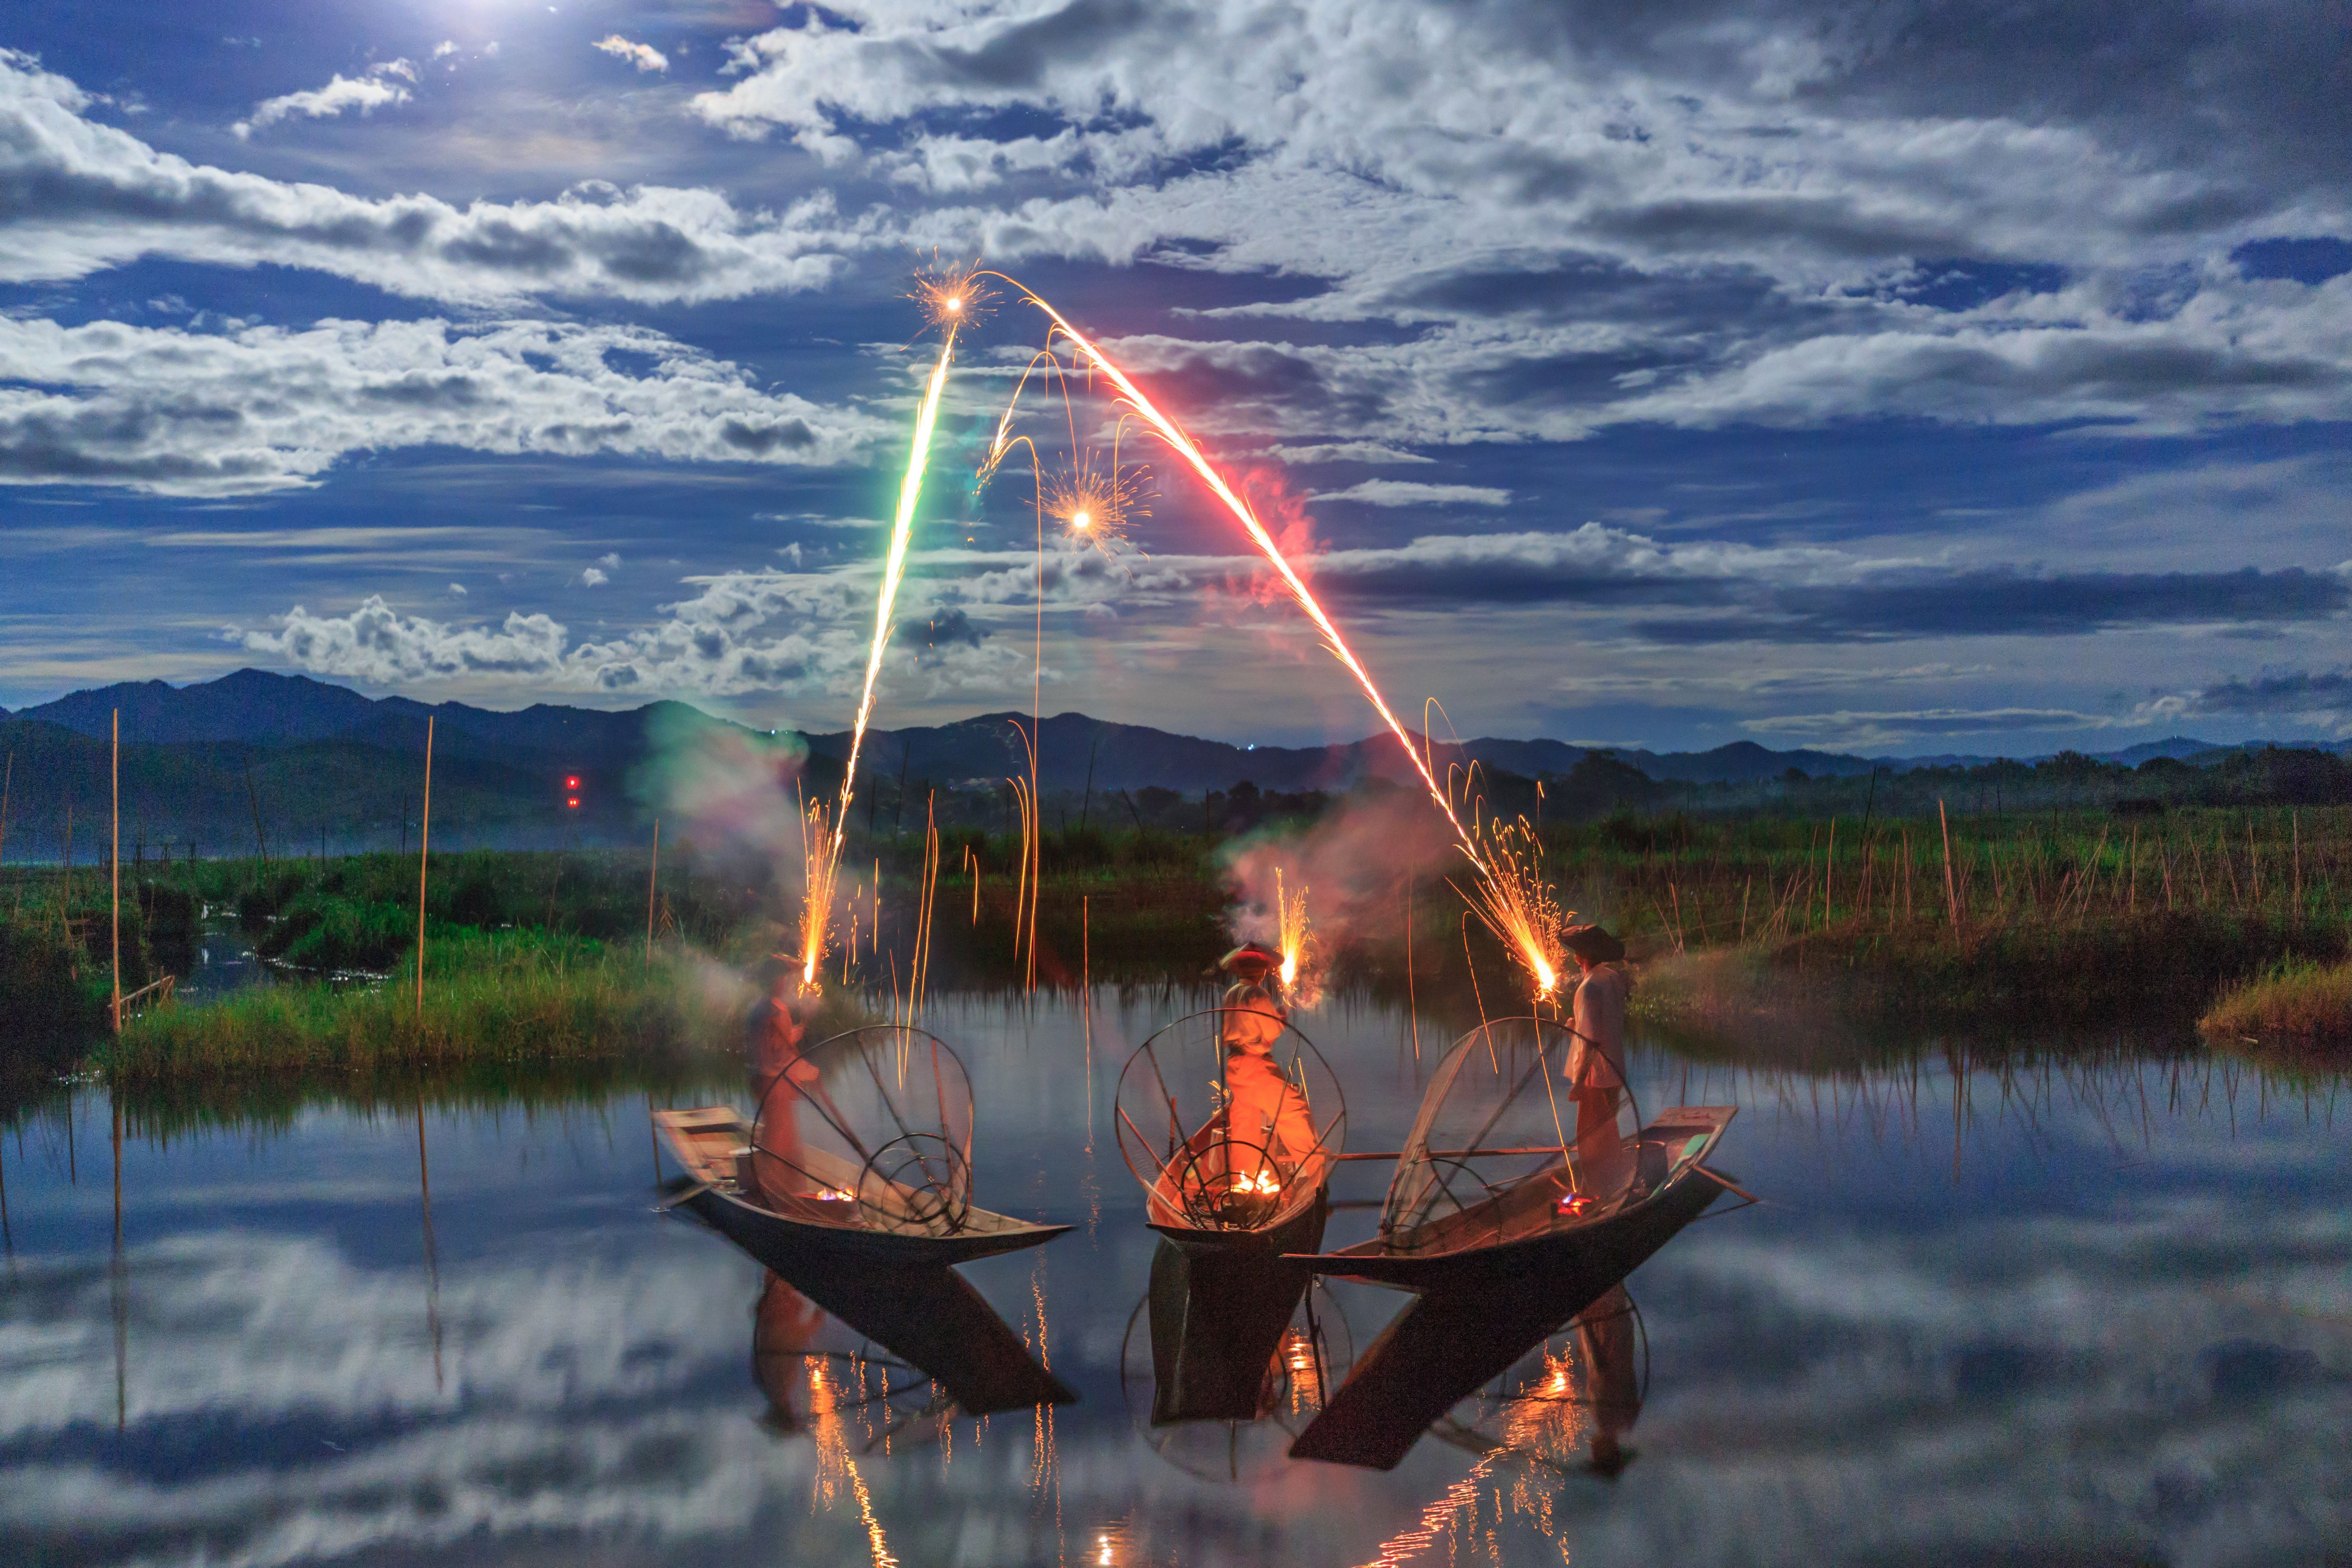 Your Shot photographer Pyiet Oo Aung visited Myanmar's Inle Lake during the Buddhist festival of Thadingyut. The holiday is also known as the Lighting Festival, so to pay tribute, he gave these fishermen fireworks and photographed the festive results.